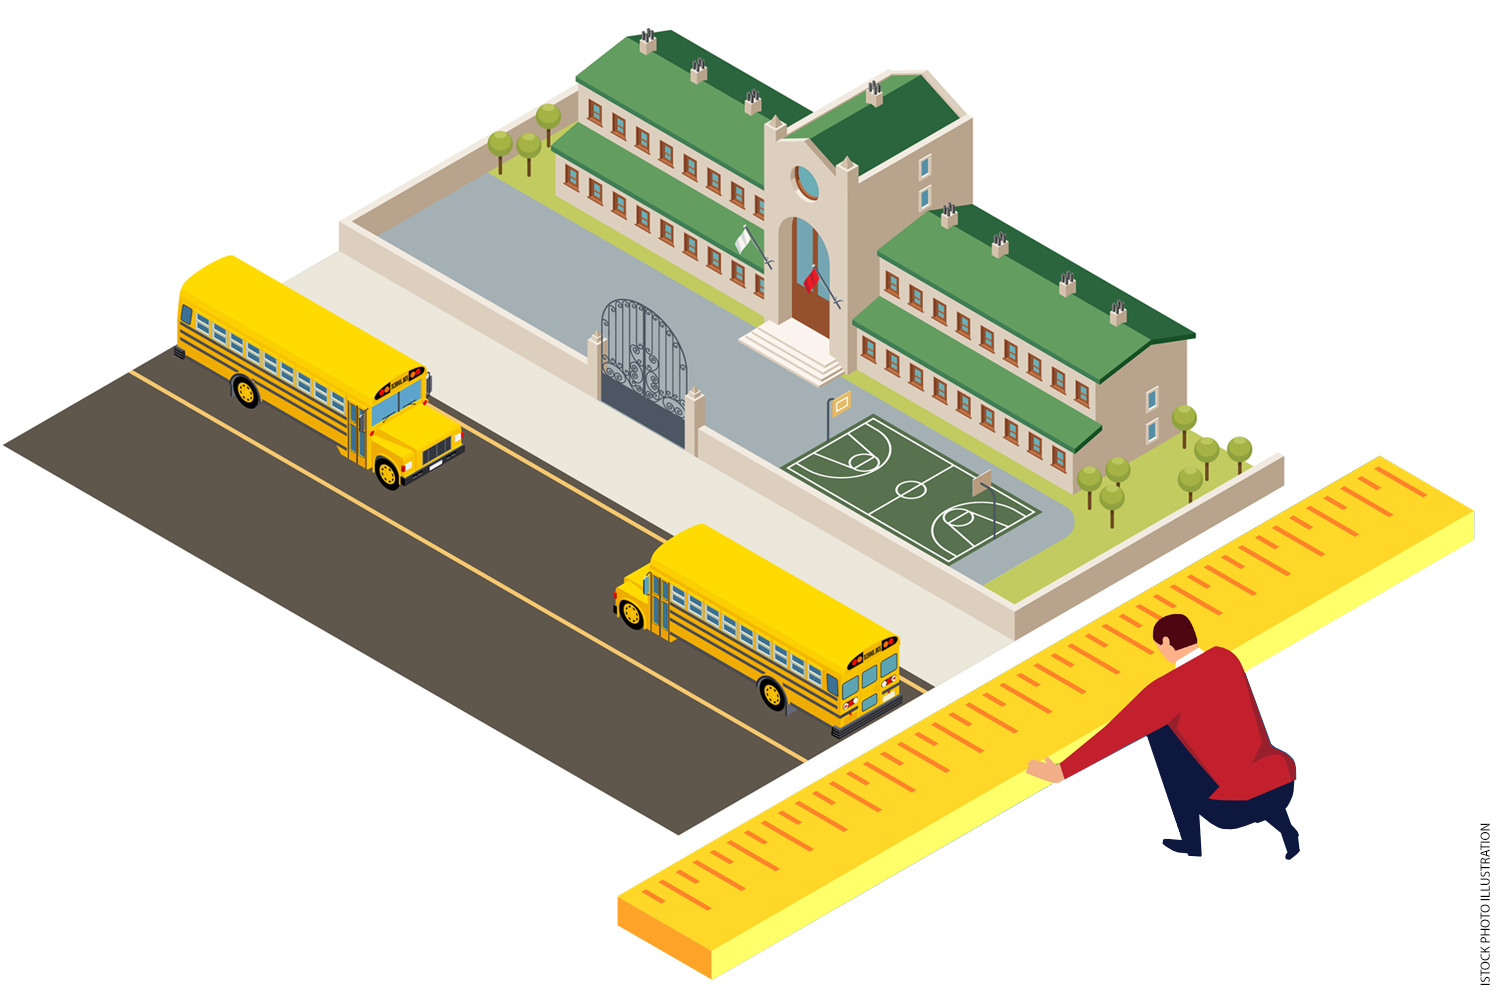 Illustration of a man measuring a school with an oversized ruler